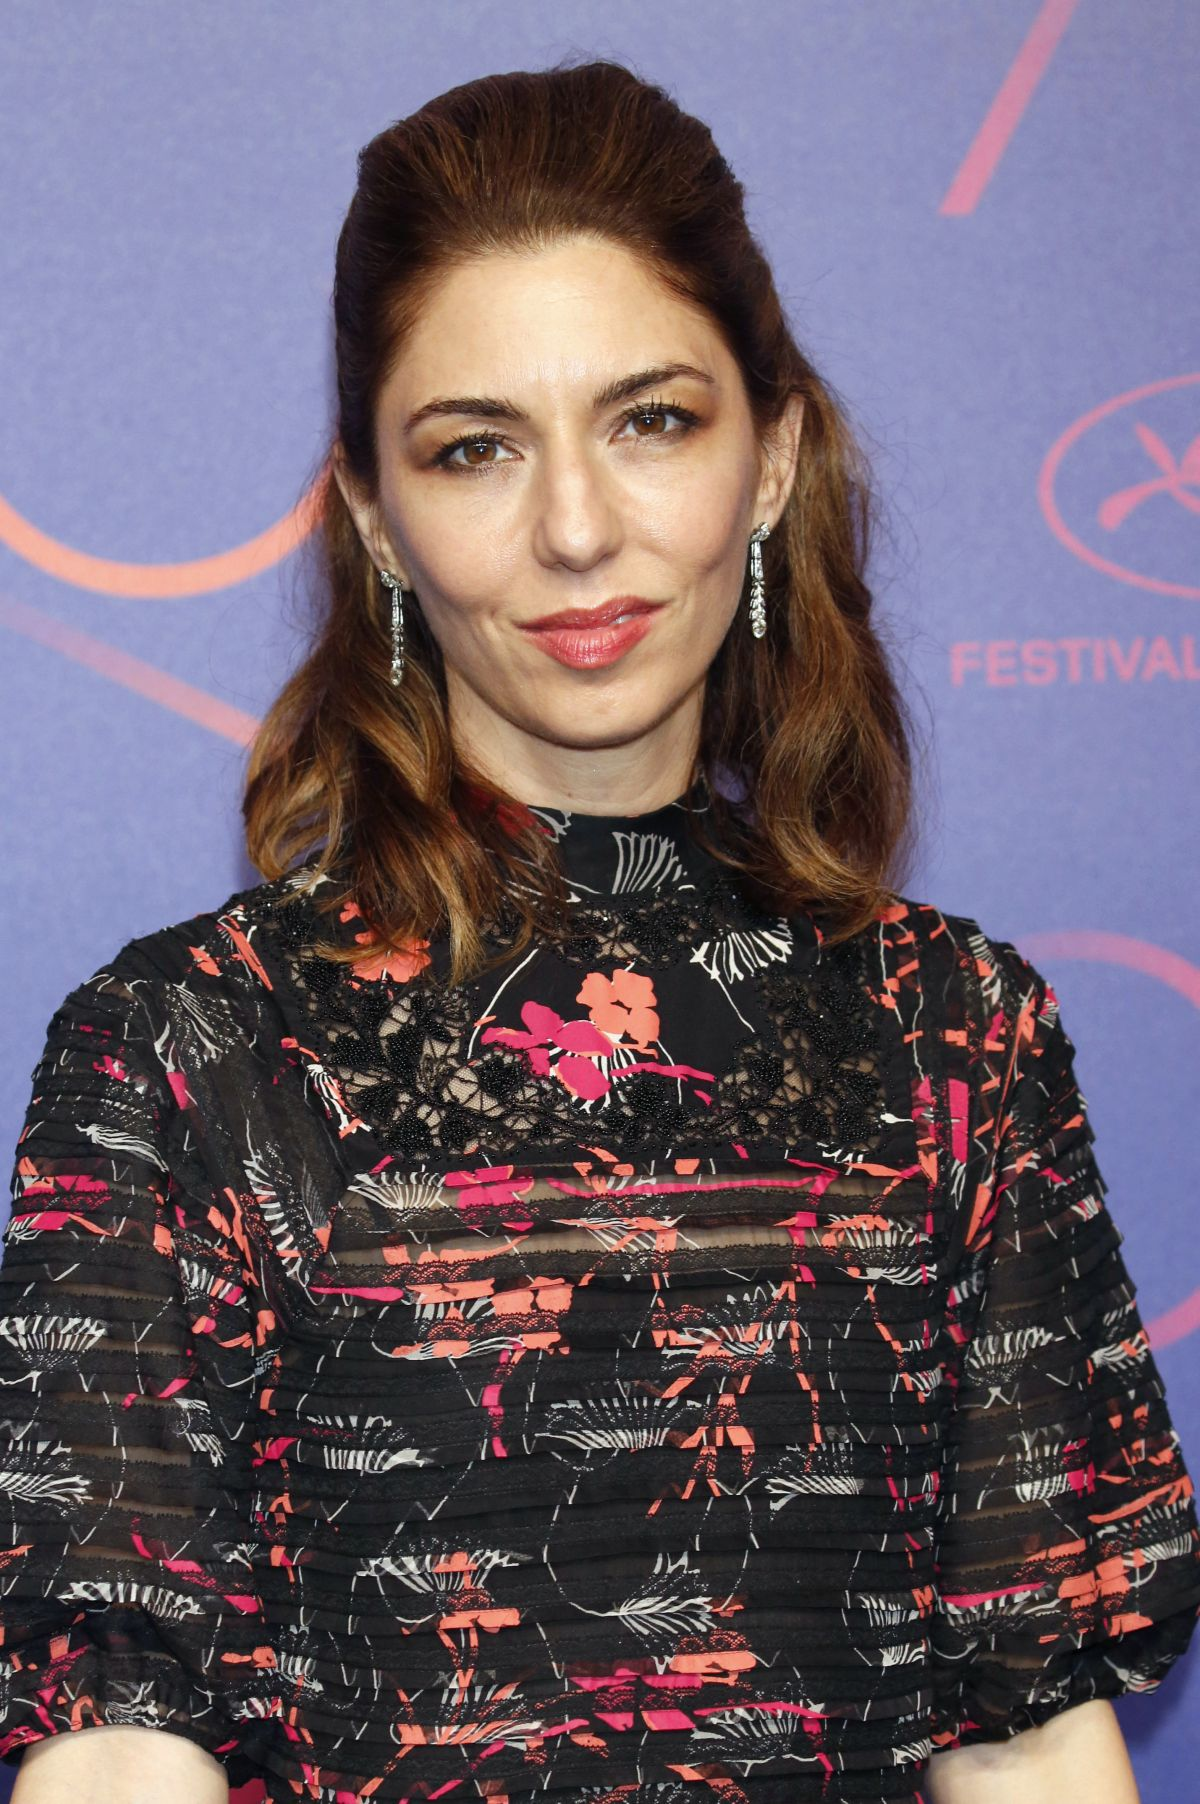 SOFIA COPPOLA at Cannes Film Festival 70th Anniversary Dinner 05/23/2017